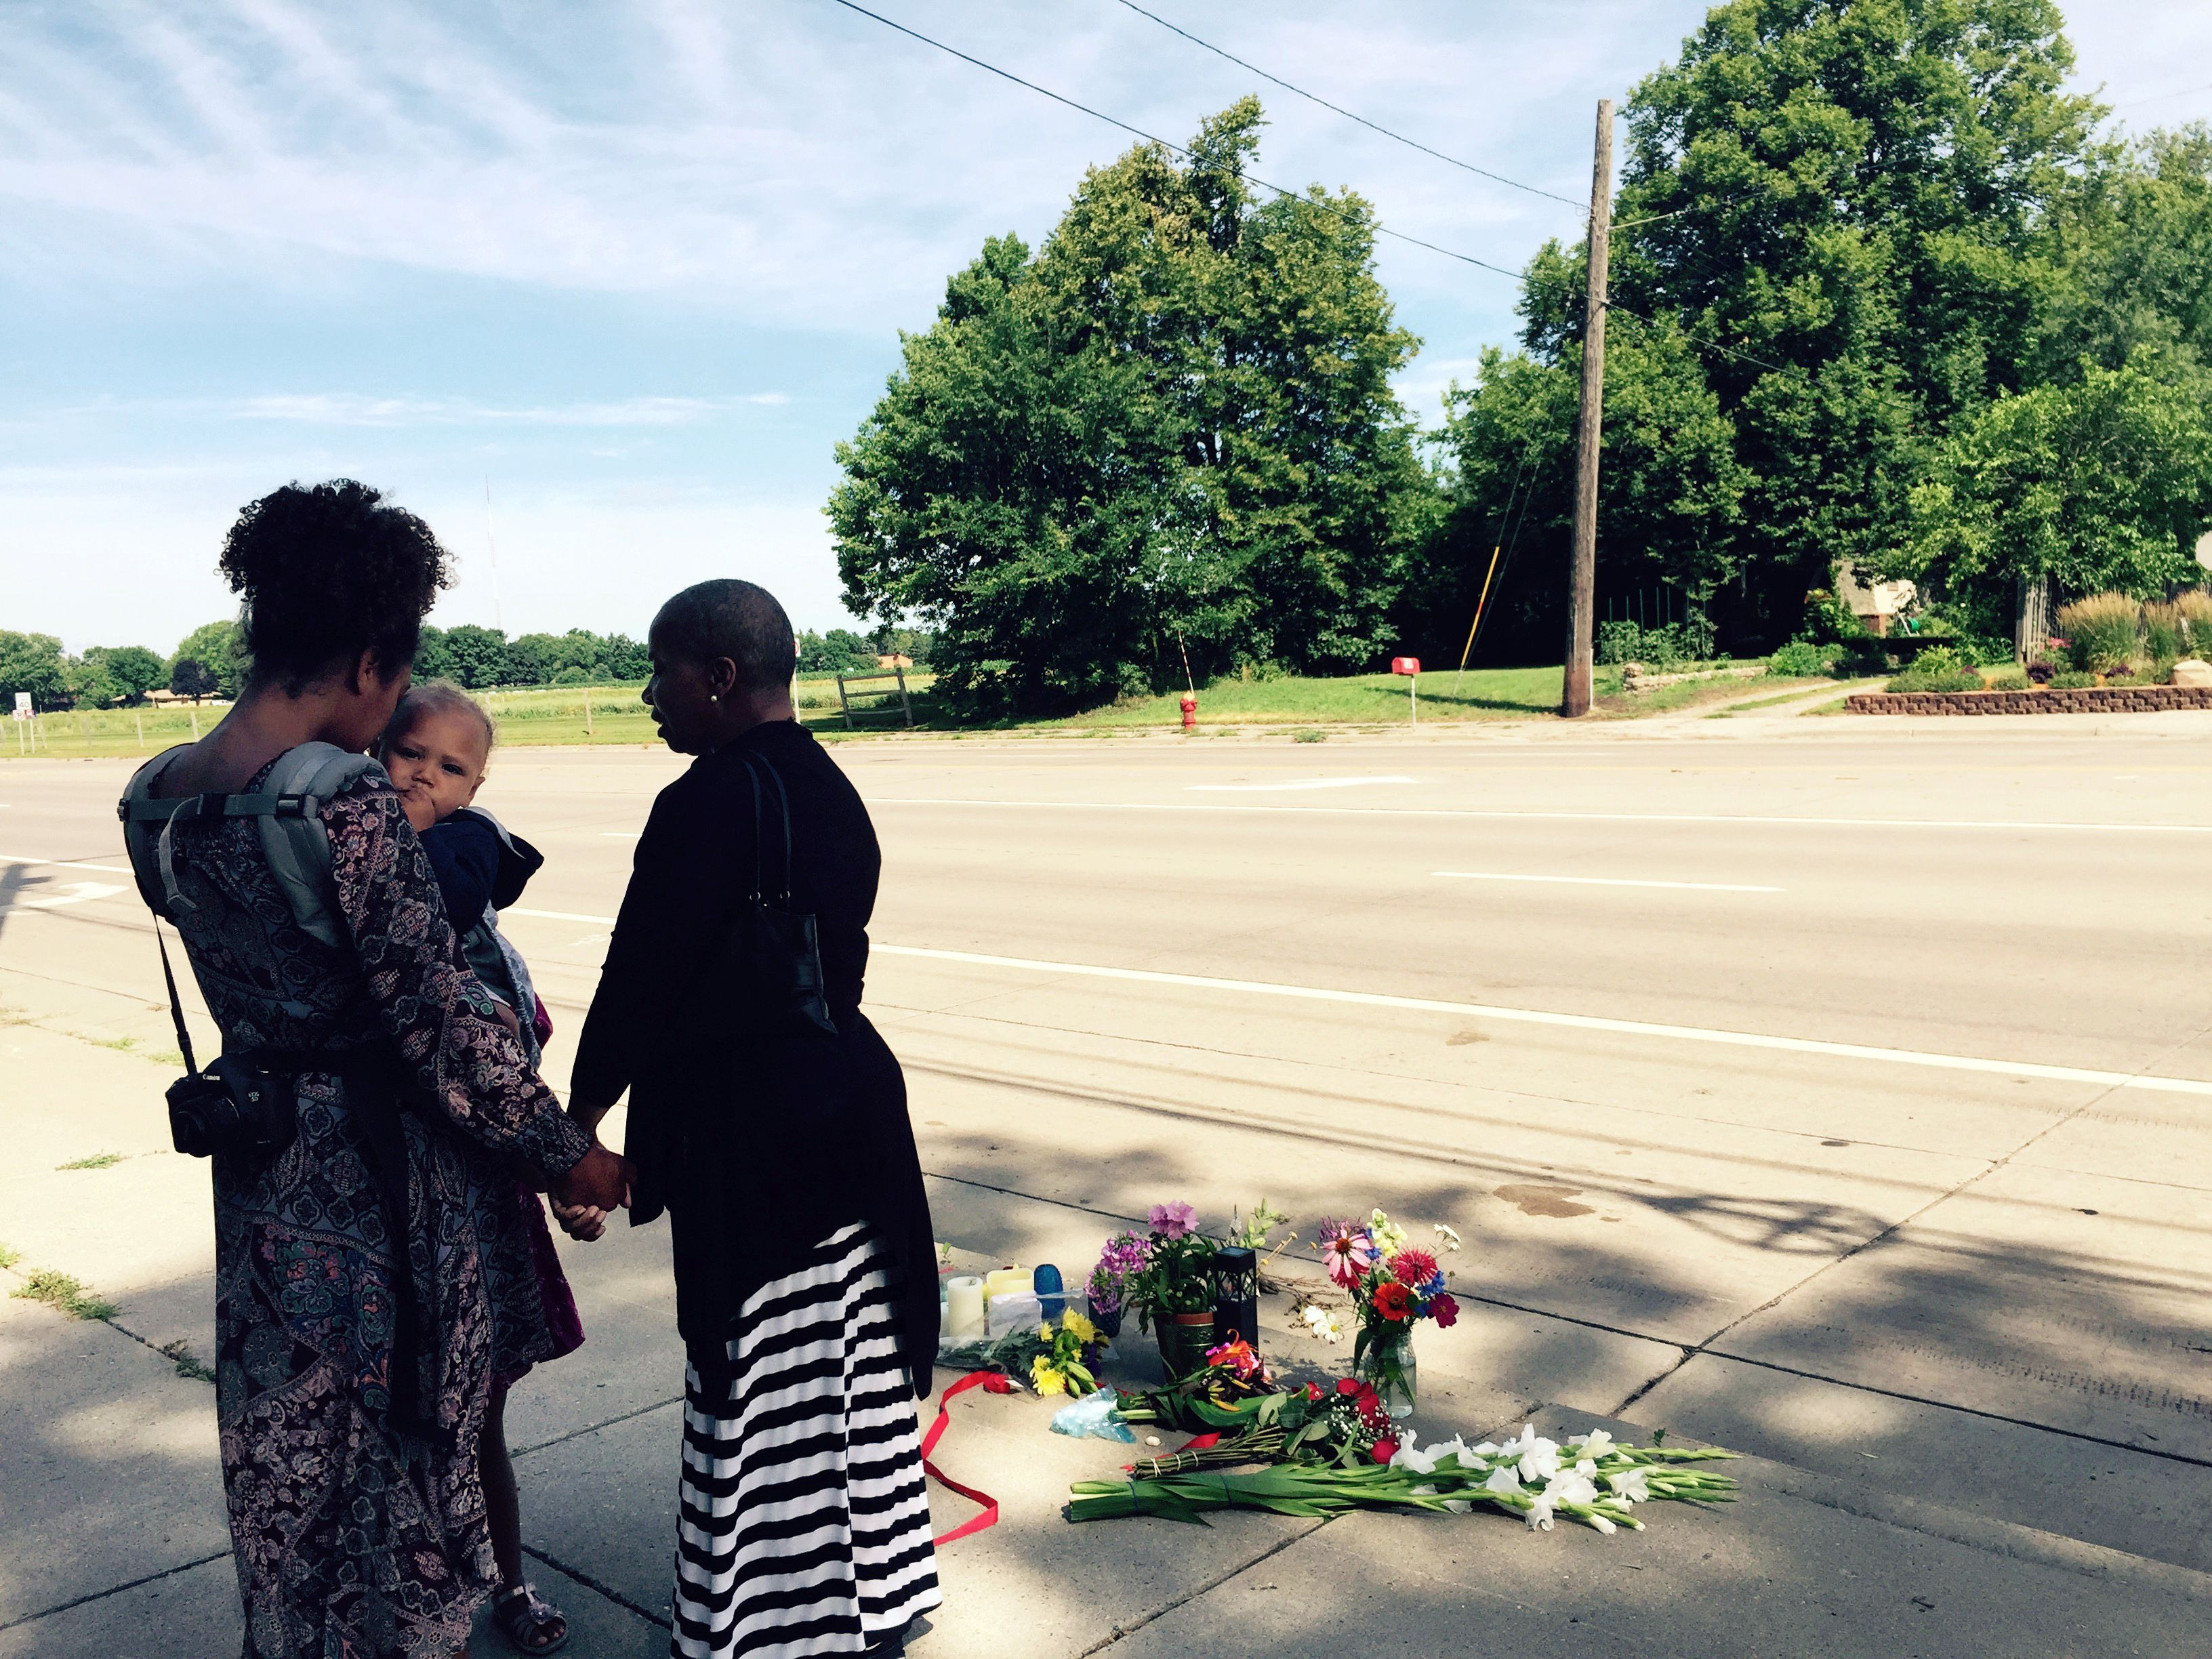 Pastor Patricia Bell, right, of St. Paul, Minnesota, prays on July 7, 2016, with Gabriella Dunn and her children Oakland Dunn, 1, and Chloe Dunn, 4, at the scene of the latest shooting of a black man by police in Falcon Heights, Minnesota. (Getty)